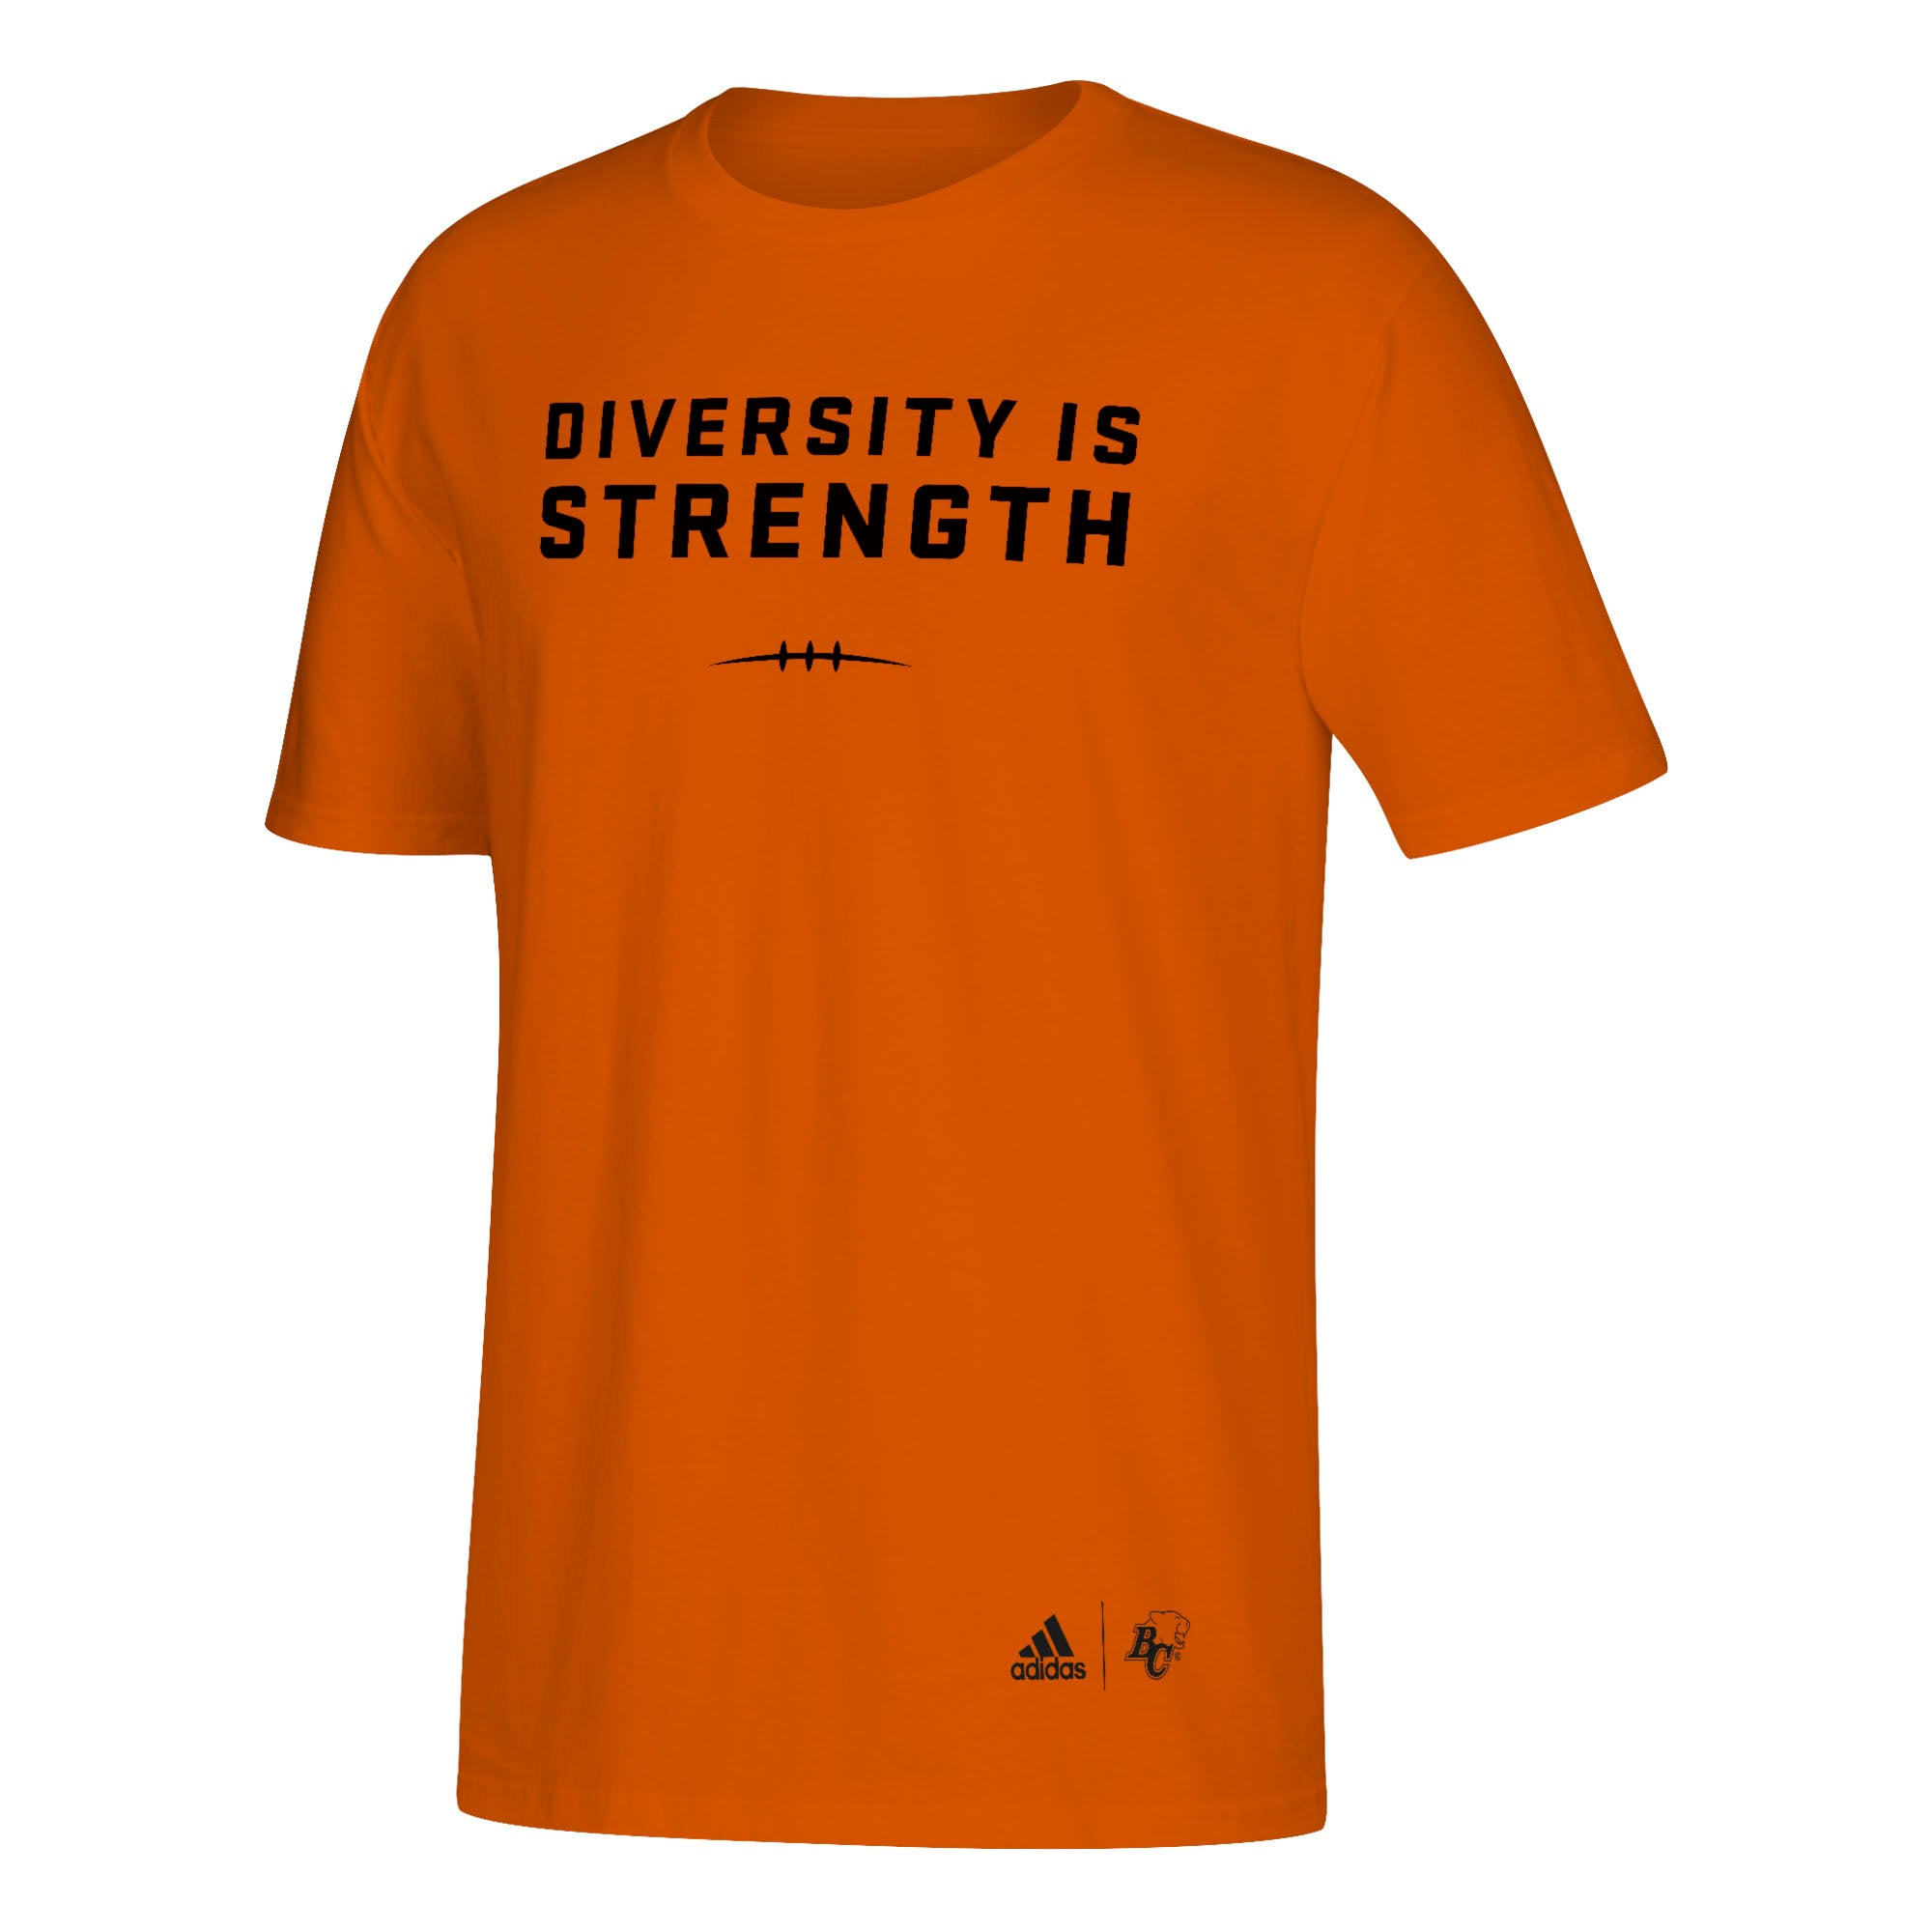 BC Lions Diversity is Strength Shirt